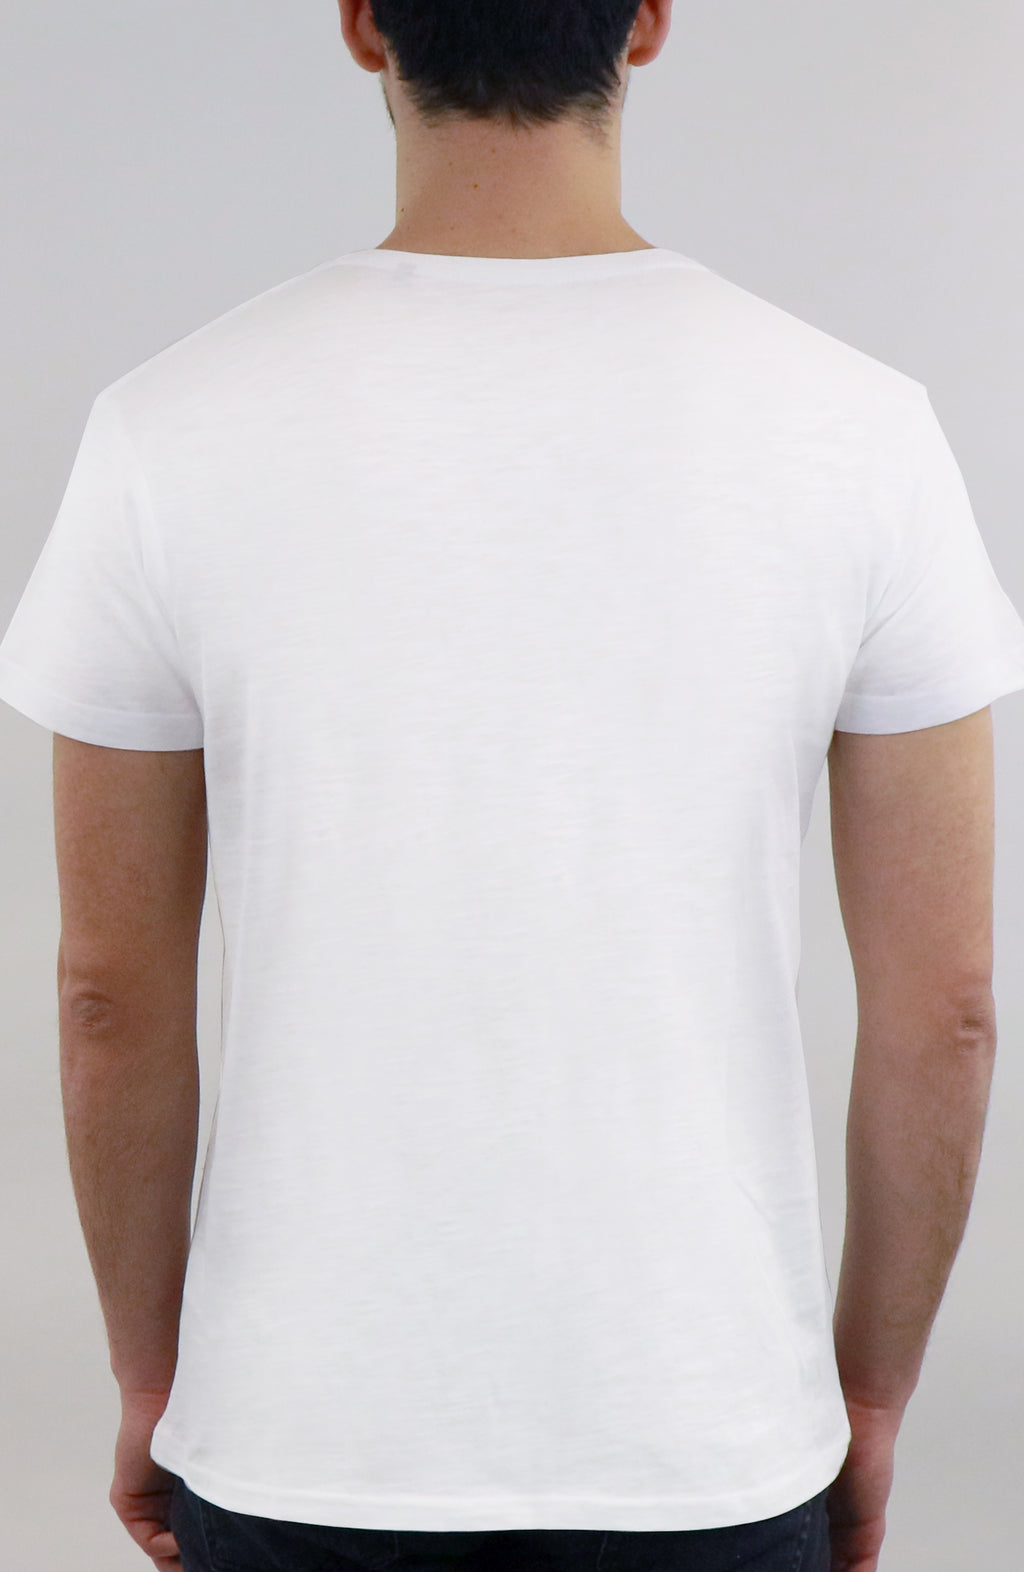 T-Shirt streetwear white for man by Farid Rueda